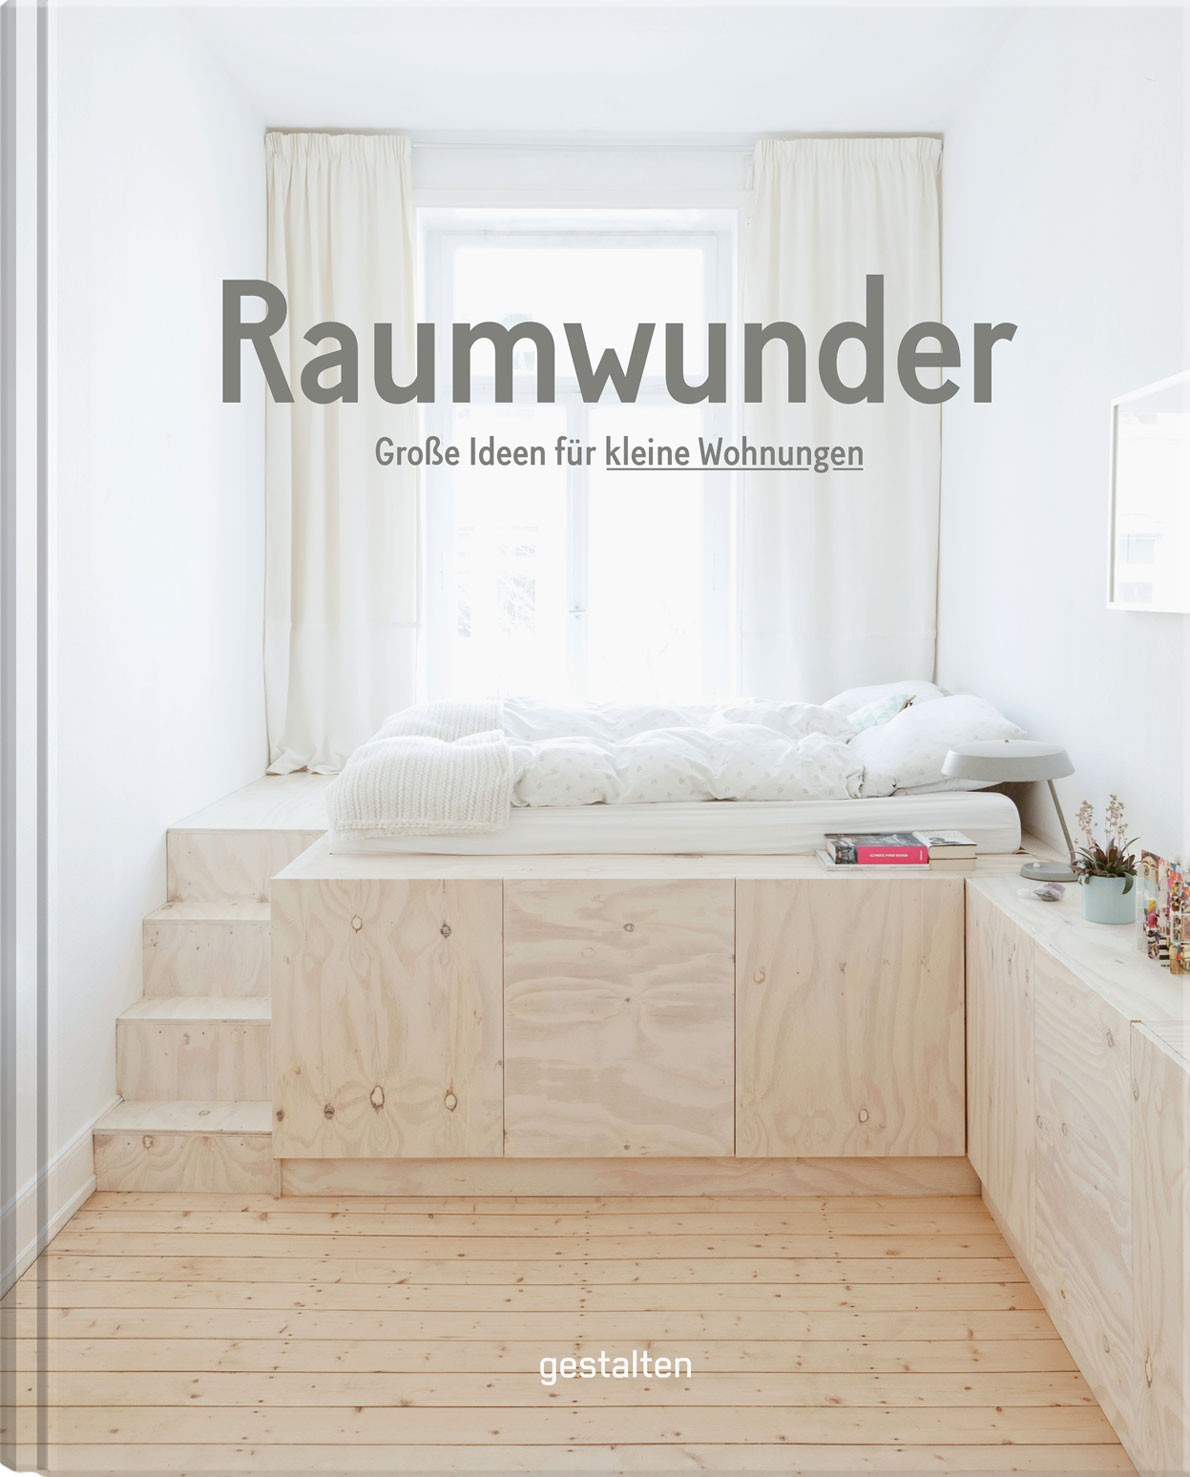 raumwunder press interior design book gestalten 00